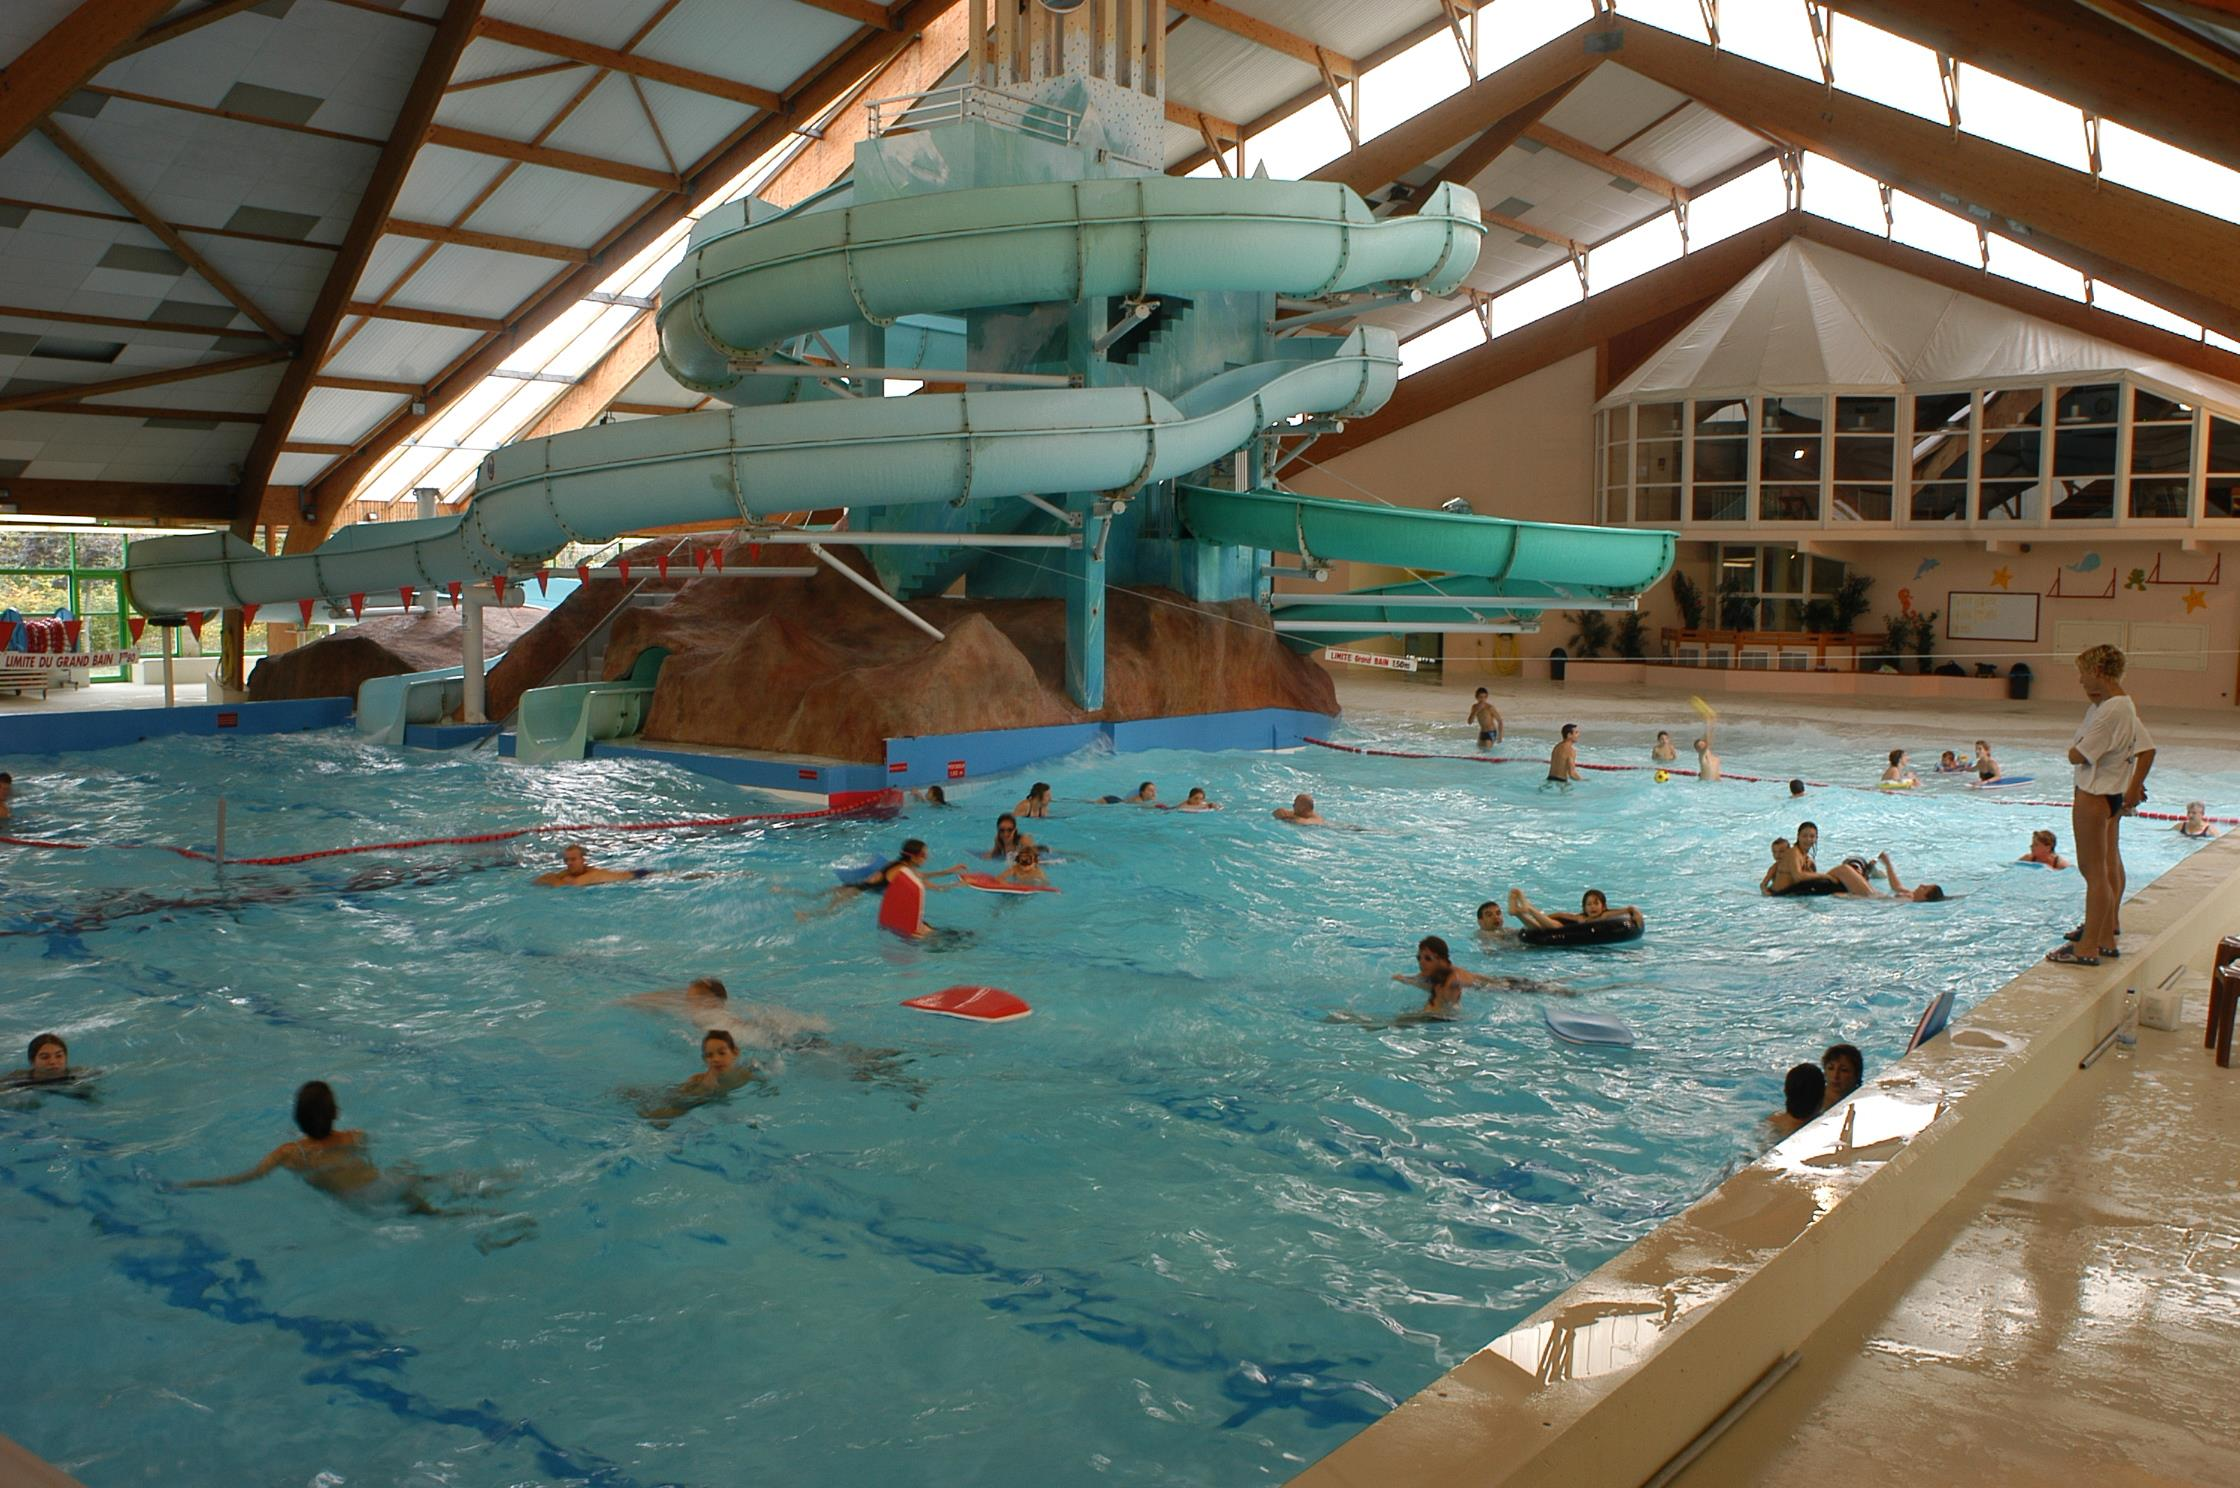 Baignade Camping Le Rochat-Belle-Isle - Chateauroux